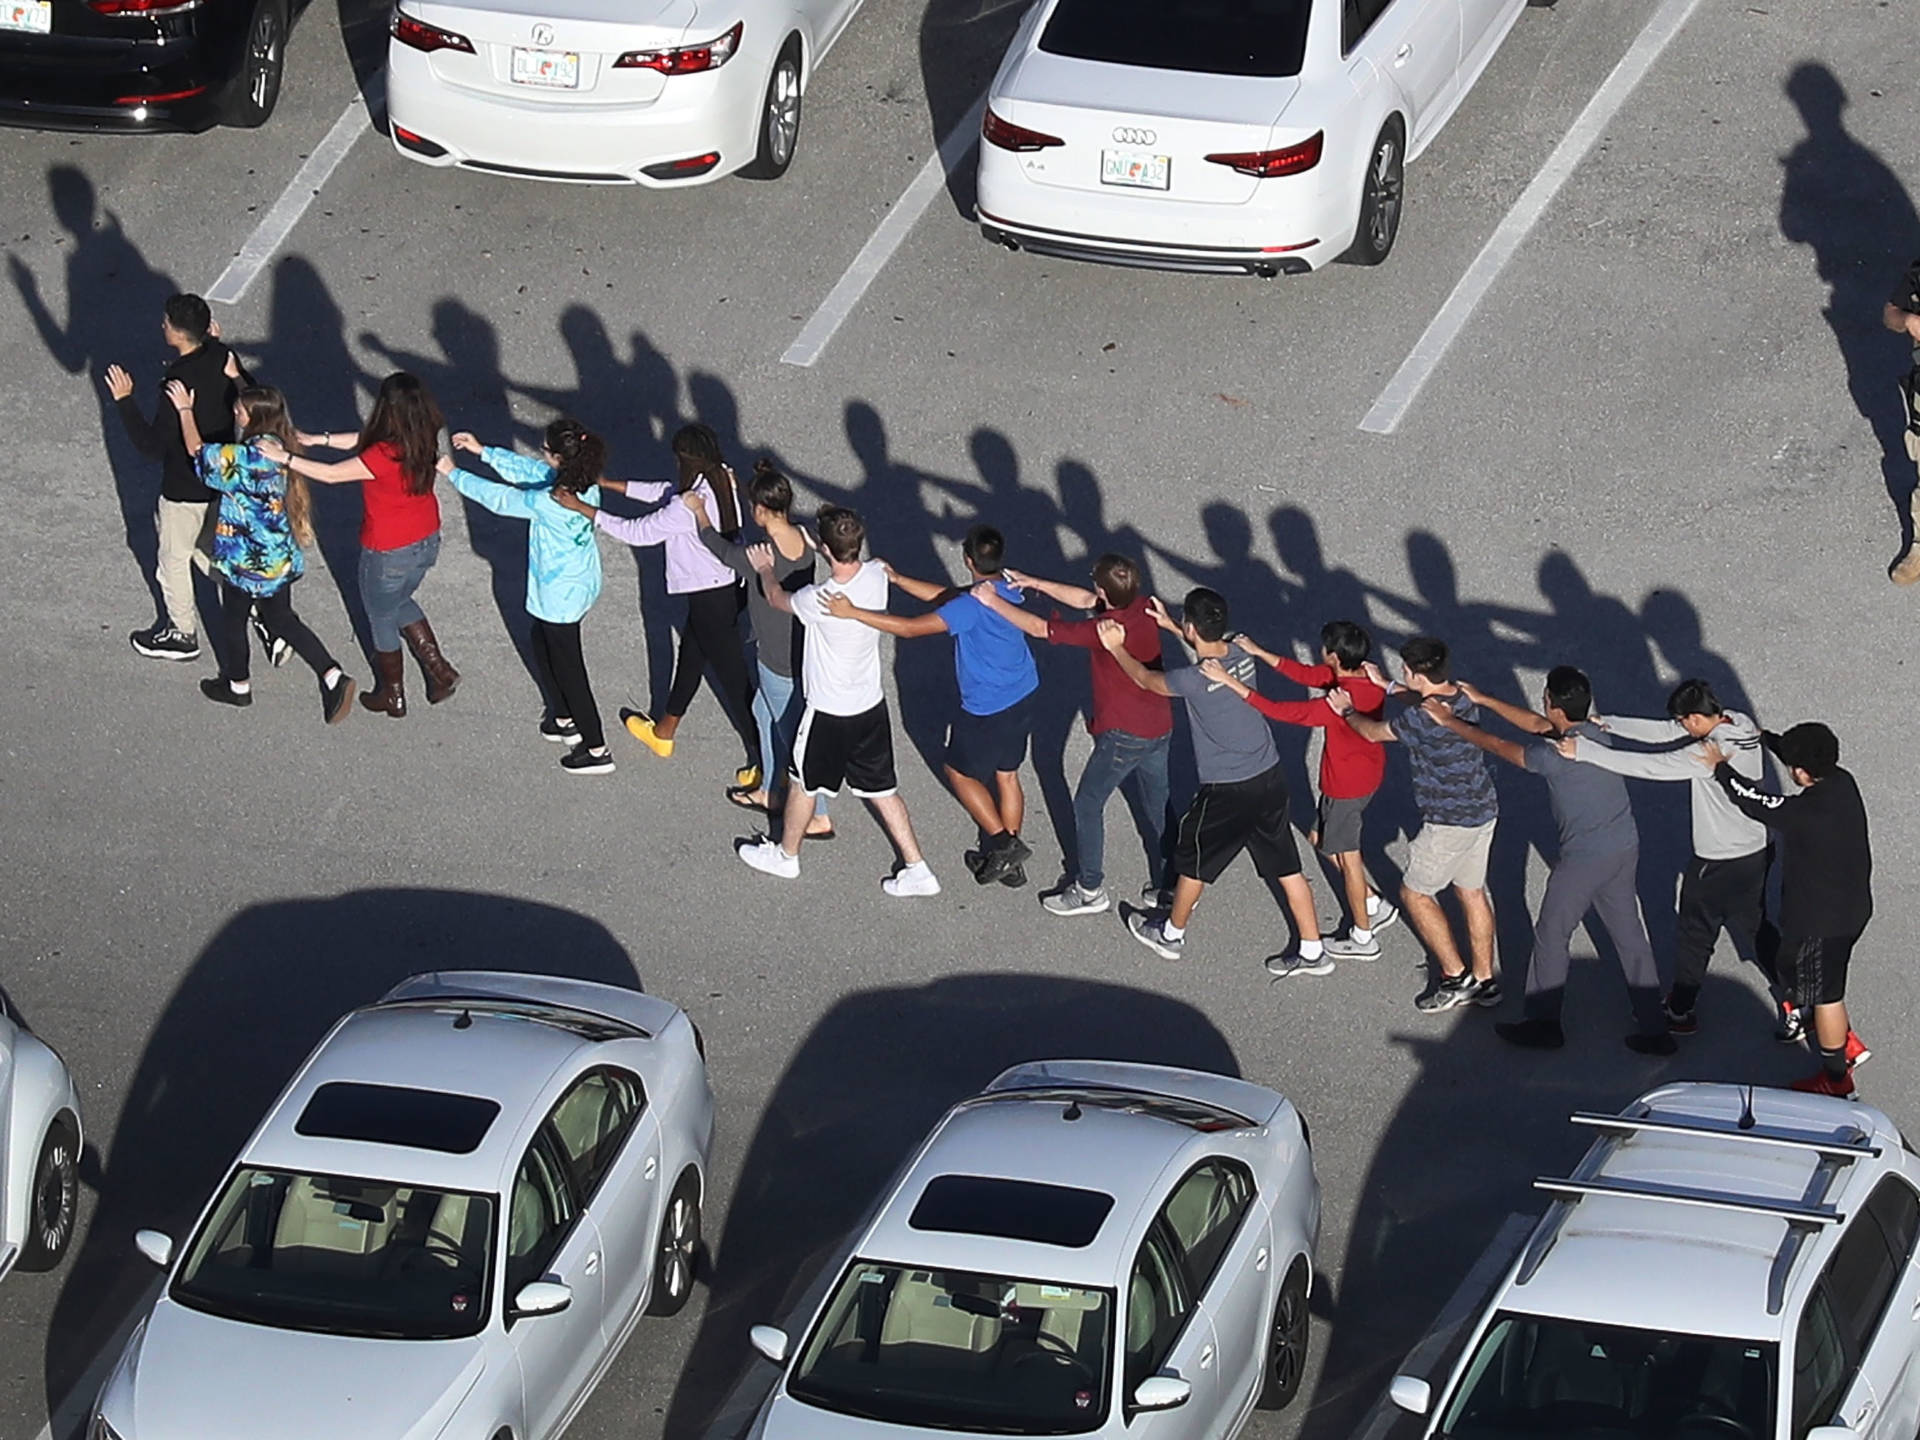 People are brought out of the Marjory Stoneman Douglas High School after a shooting at the school that killed at least 17 people on Wednesday in Parkland, Florida. Joe Raedle/Getty Images